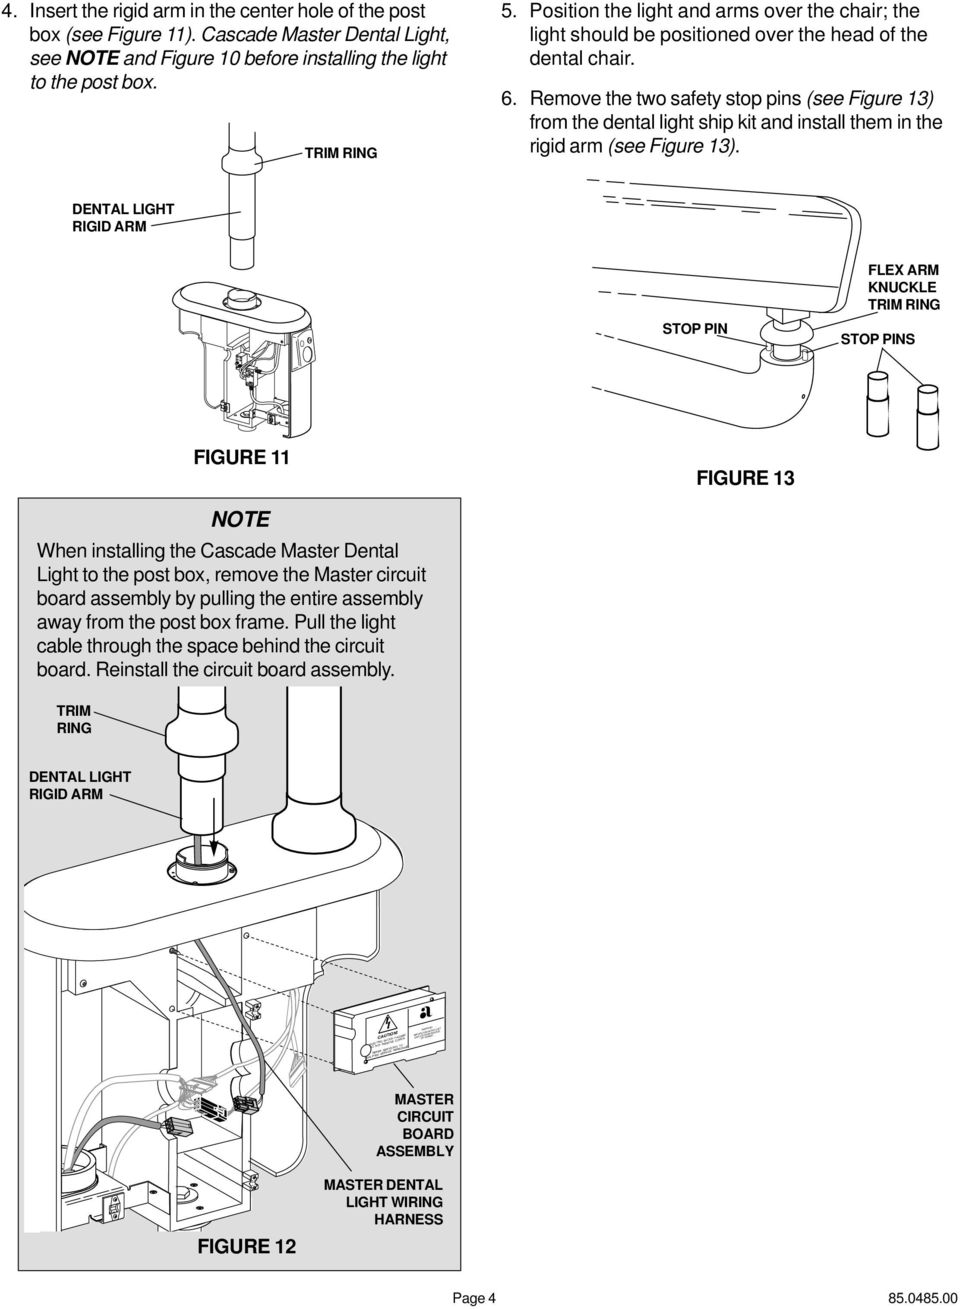 Remove the two safety stop pins (see Figure 13) from the dental light ship kit and install them in the rigid arm (see Figure 13).